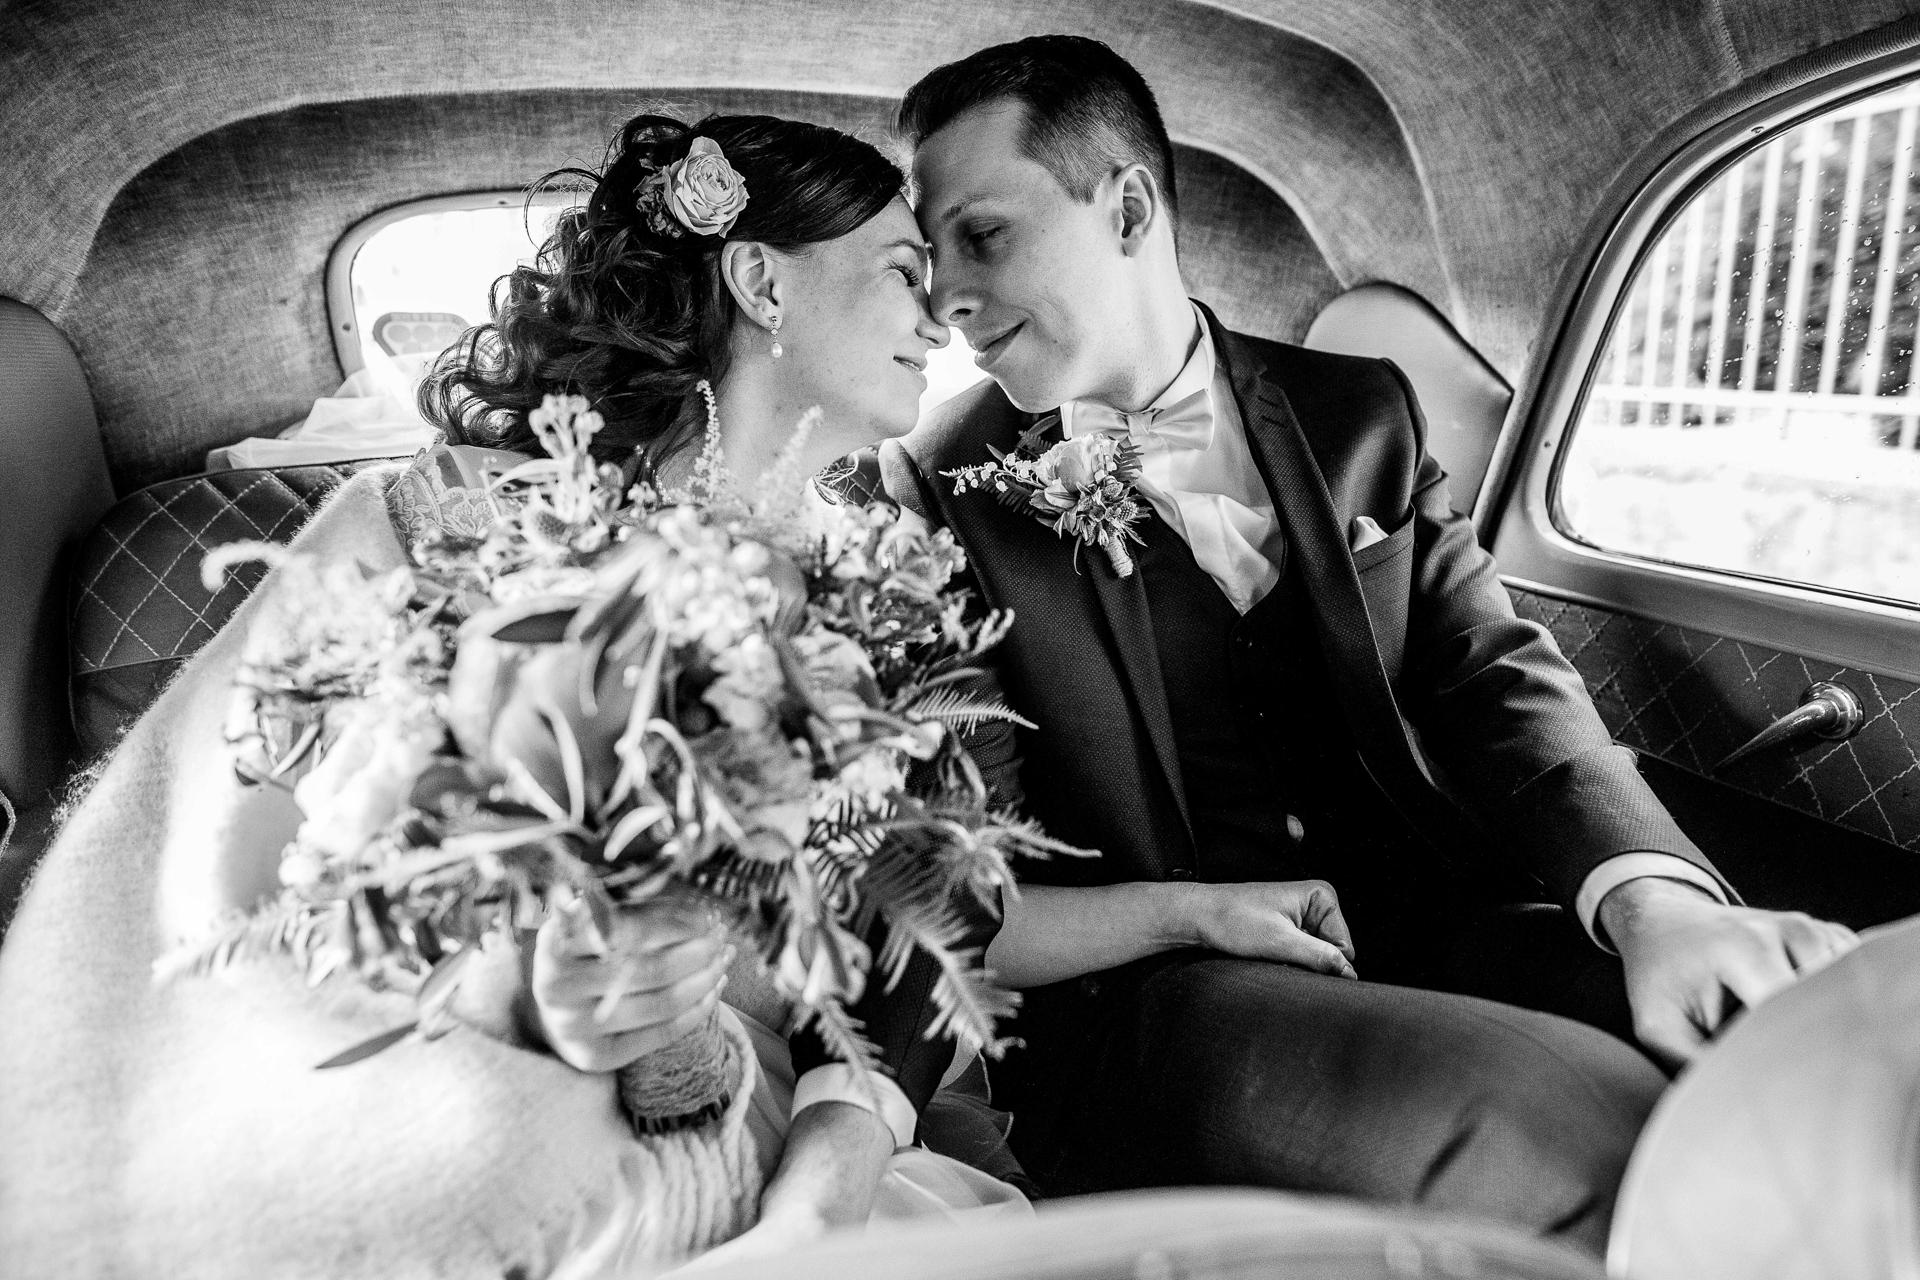 Black and White photo of the bride and groom having a quiet and intimate moment alone in the backseat of the car